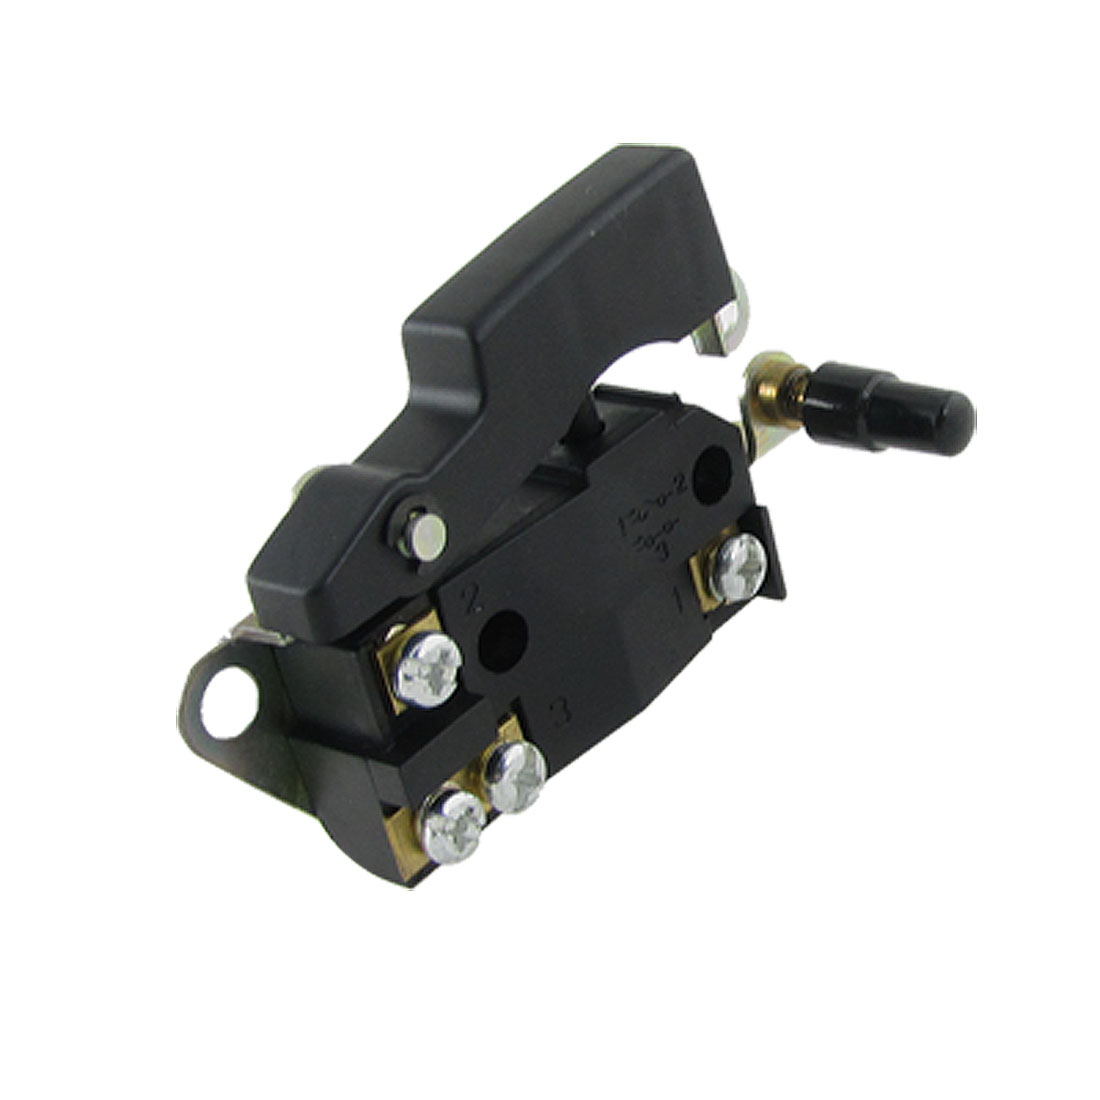 AC 250V Optional Lock On Electric Power Tool Trigger Switch